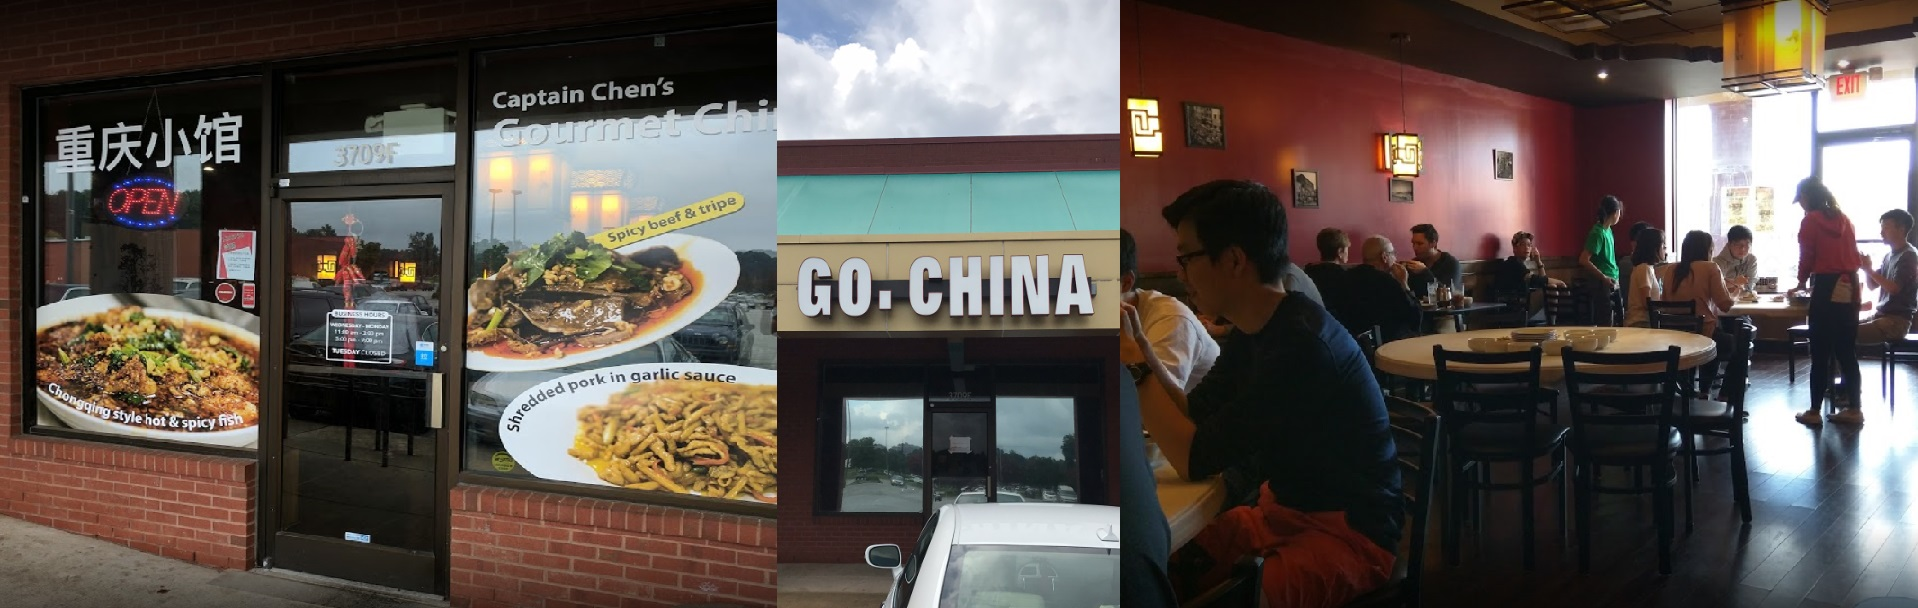 Your favorite Chinese food atGourmet China Chinese